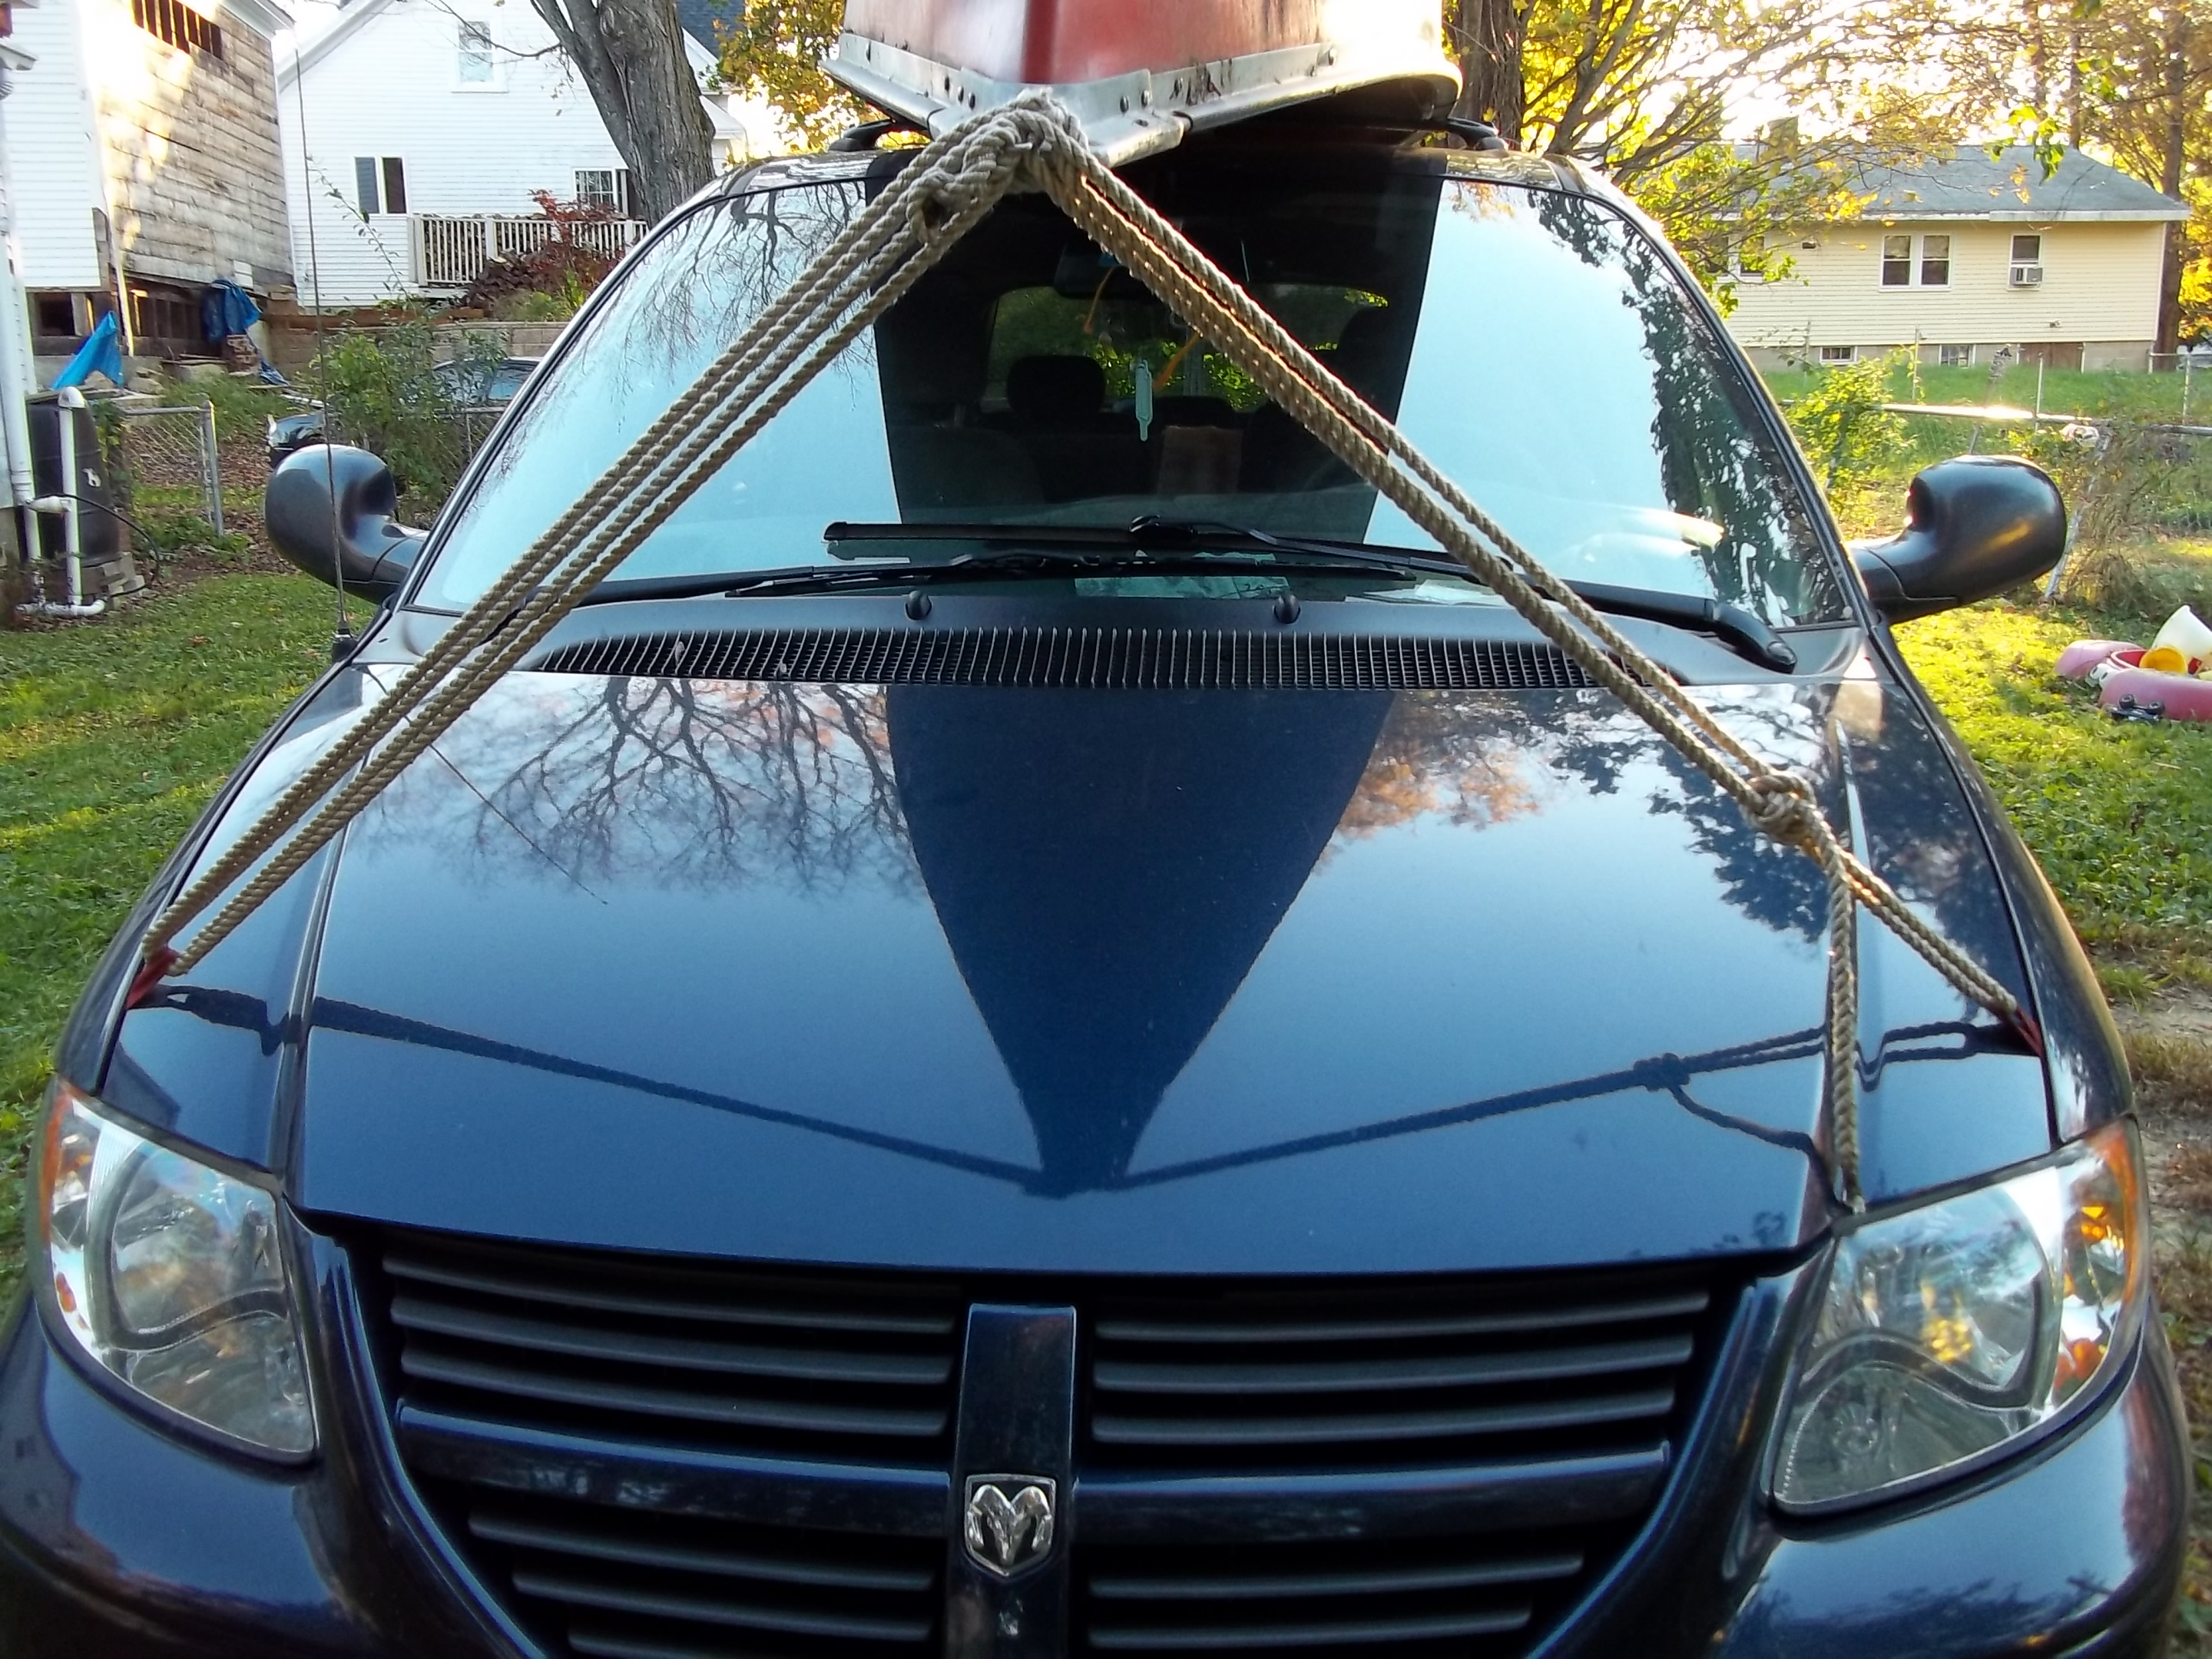 Car tie down anchors, the easy way to tie anything to your car roof quickly and safely